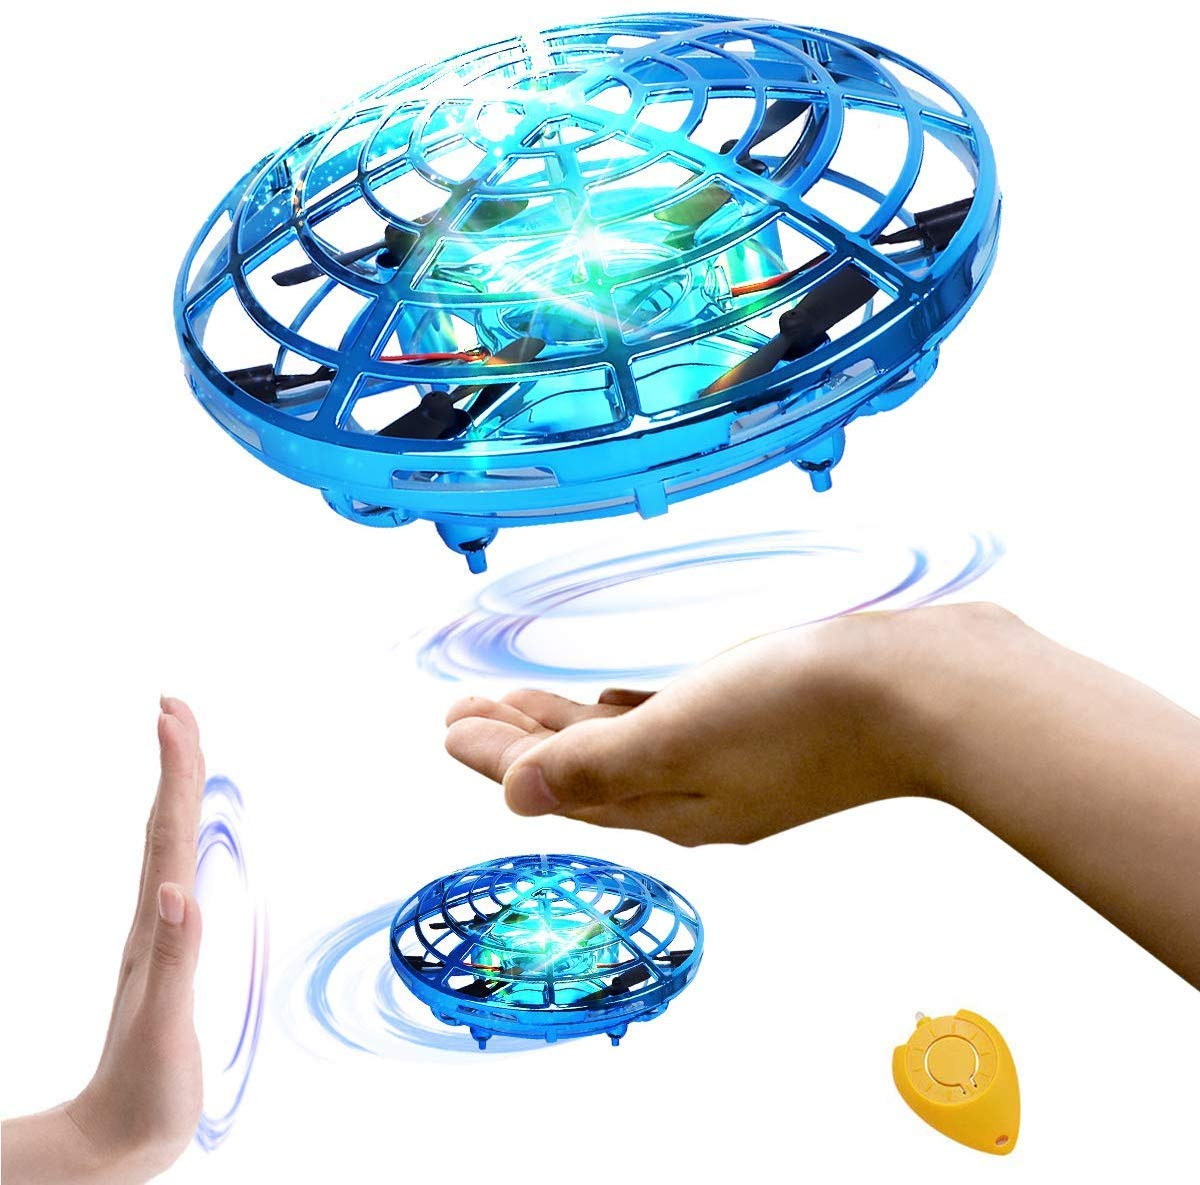 98K Hand Operated Drones for Kids or Adults, Light Up Joy Flying Ball Drone, Helicopter Mini Drone, Easy Indoor Small Flying Toys for Boys or Girls by 98K